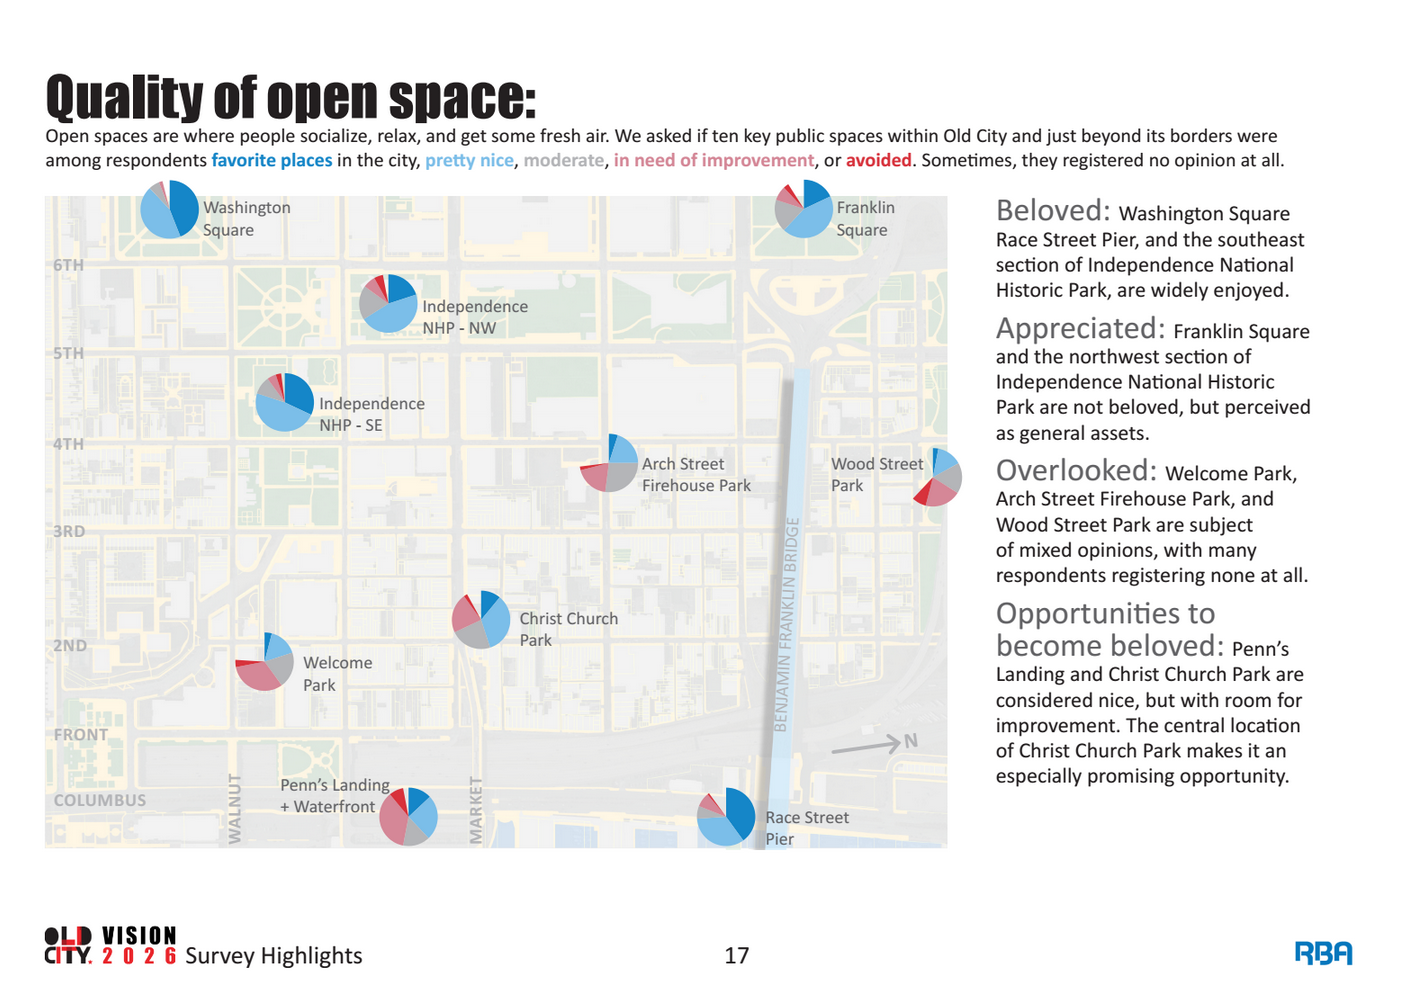 Quality of open space